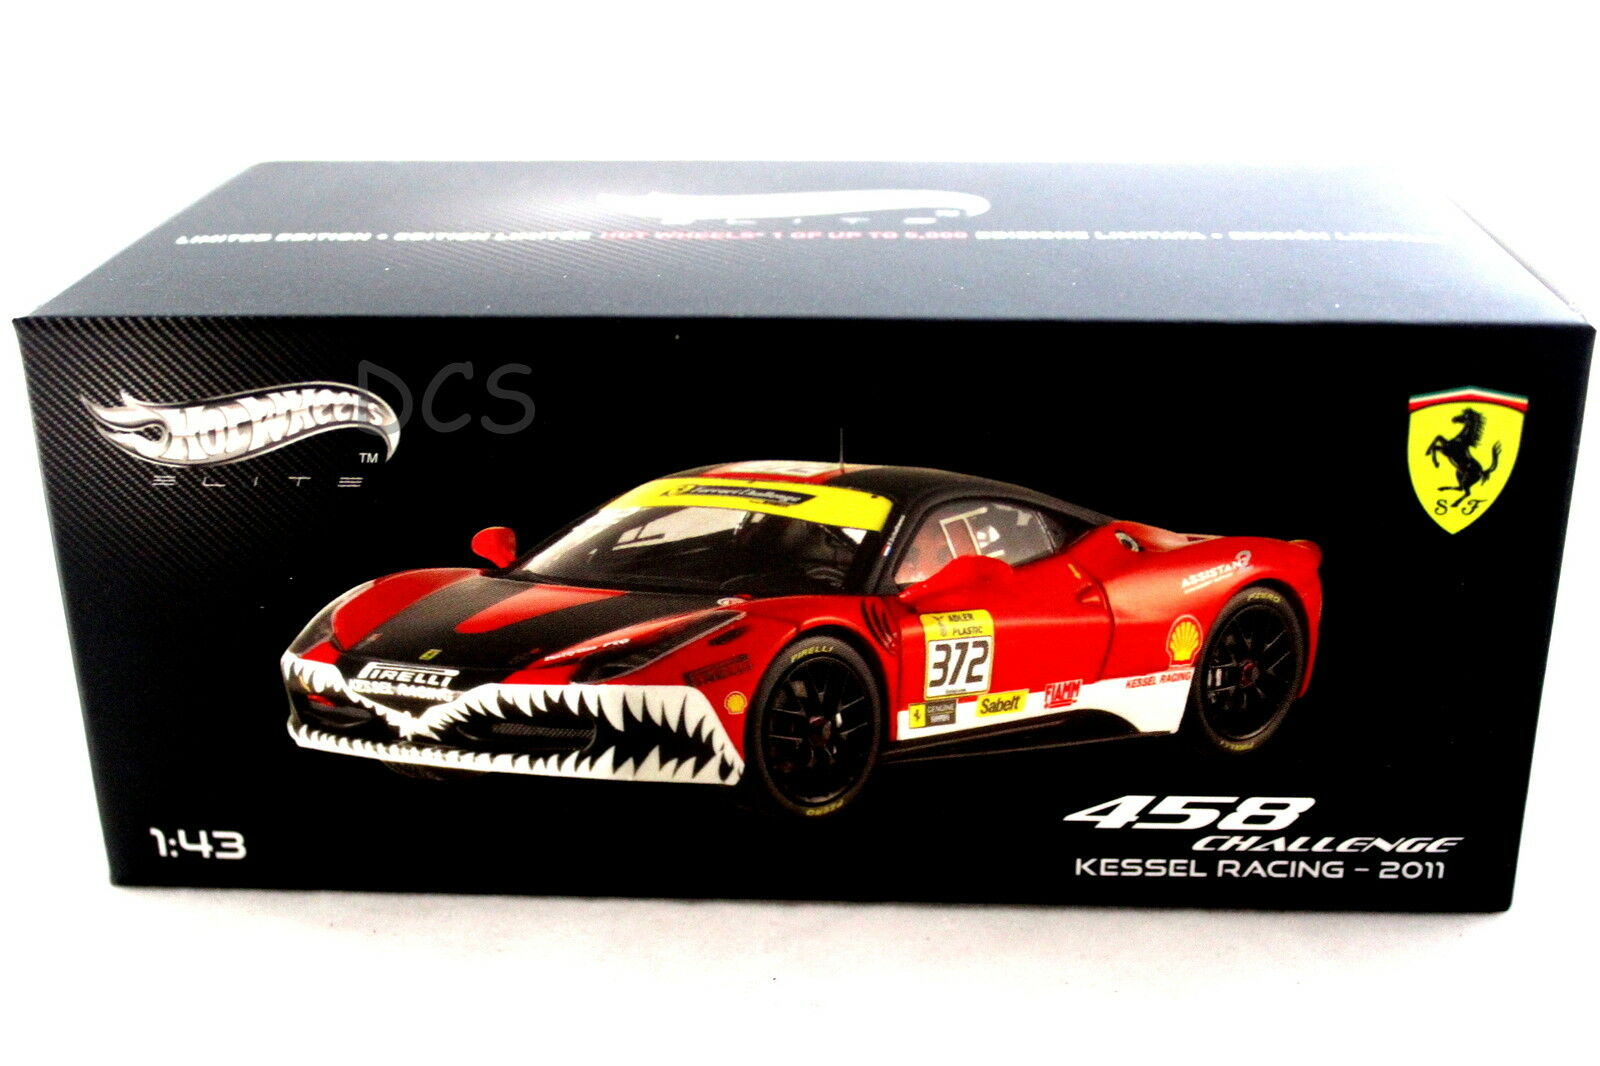 Ferrari 458 Défi Kessel Course 2011 Hot Wheels Elite 1 43 Voiture Miniature